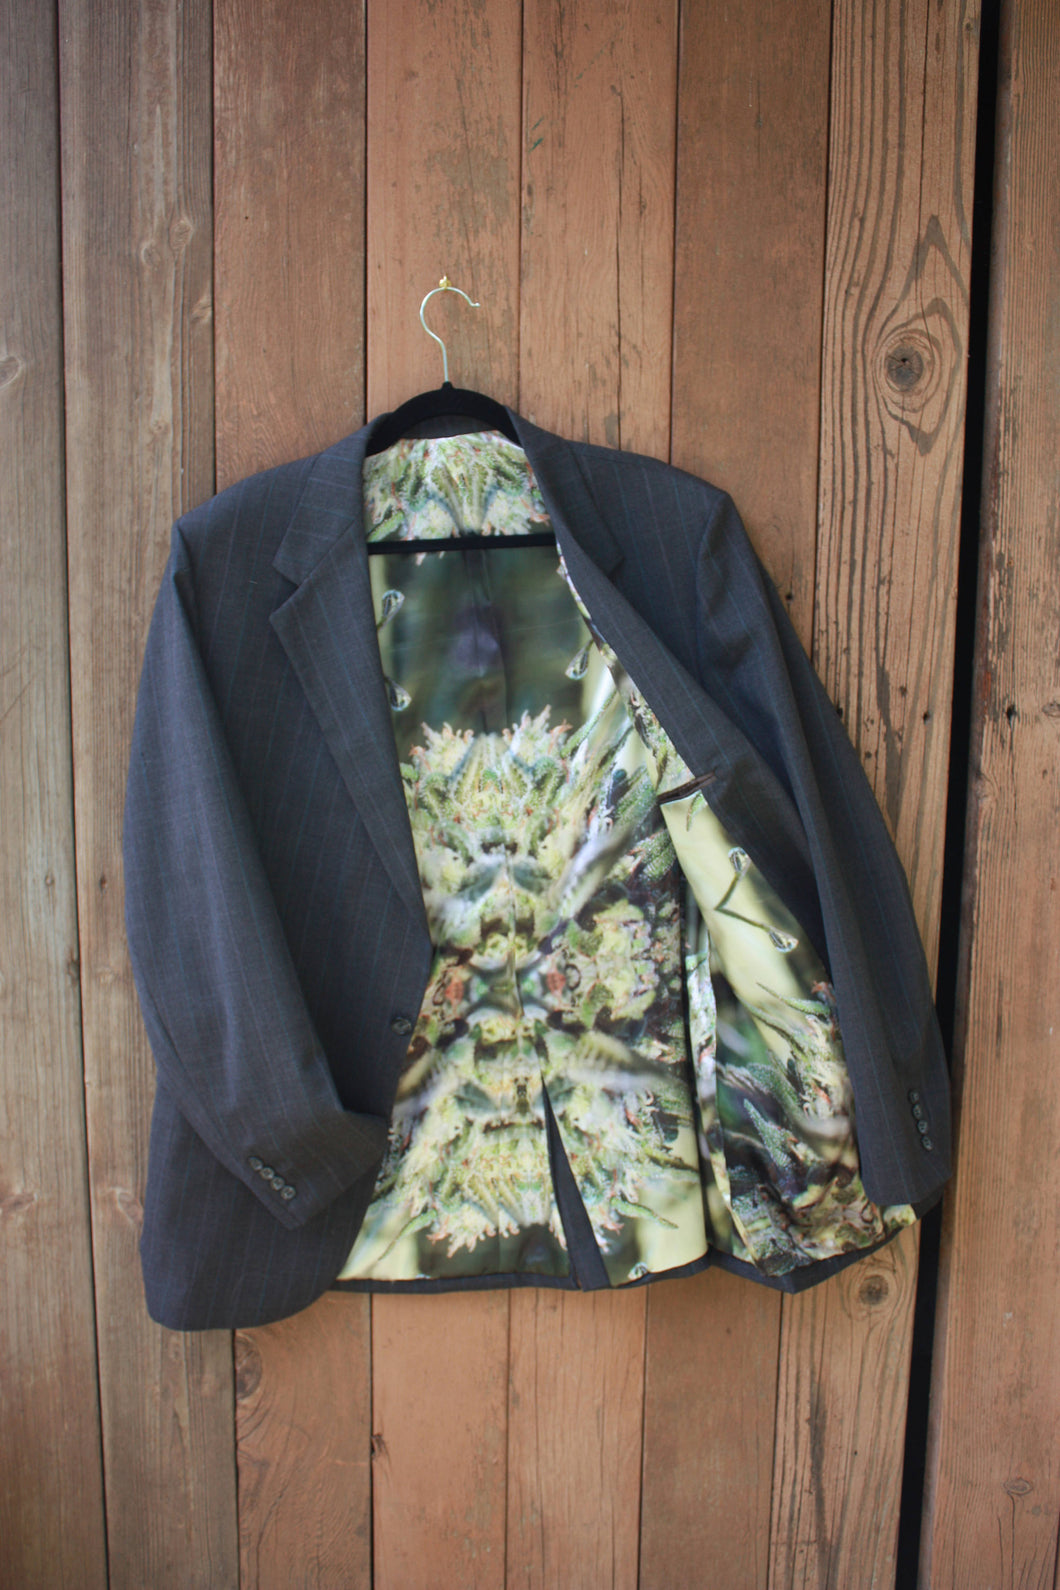 Custom Jacket Men Vintage Mens Suit Jacket for Beach Wedding, Cannabis Wedding, Mens Wedding Jacket,Upcycled Jacket,Mens Blazer